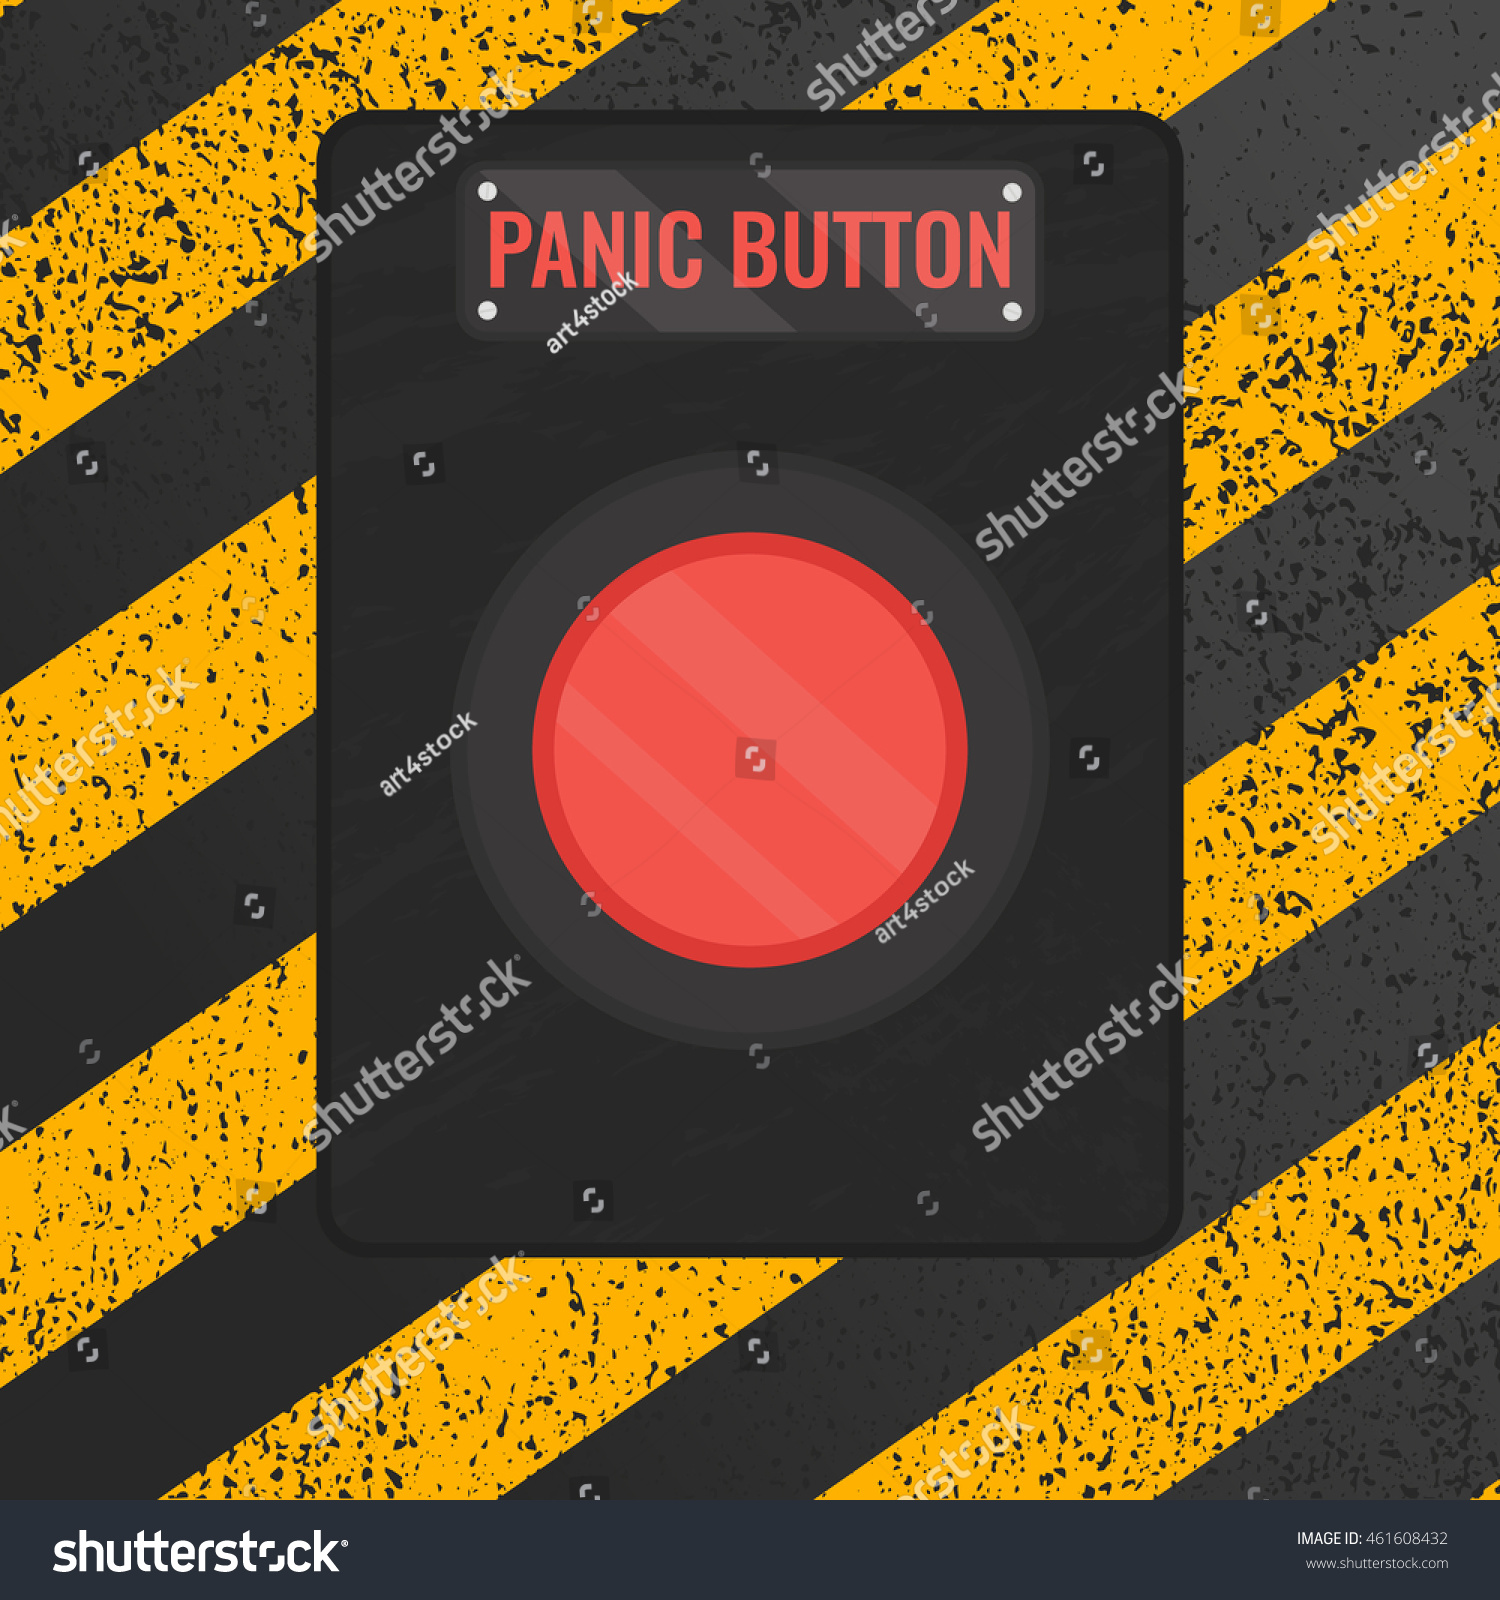 Emergency stop icon clipart emergency off - Vector Illustration Of A Red Emergency Stop Lever On Rusty Yellow And